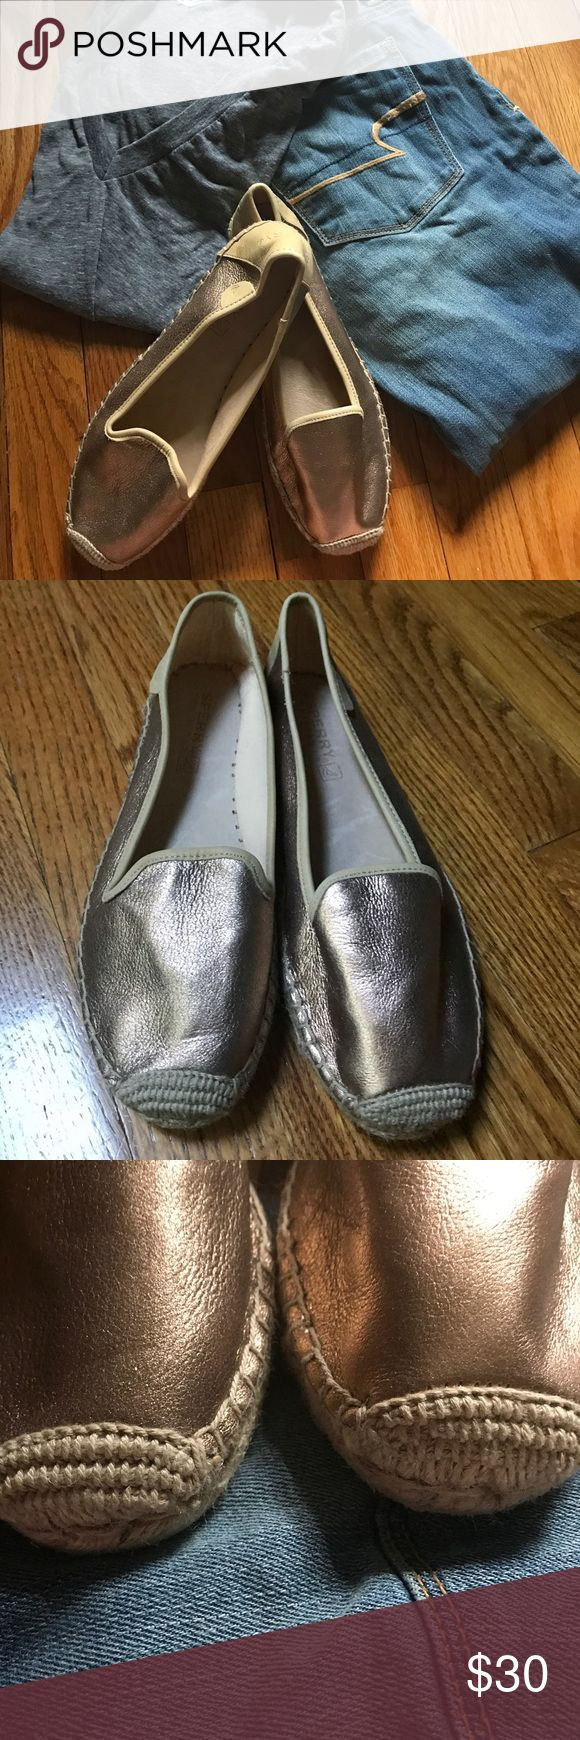 Sperry Rose Gold Espadrilles Sz 7.5 Perfect summer flat in trendy Rose Gold! Rubber soled espadrilles with rose gold leather. Never worn. A small mark on the back of the right shoe (shown in picture). Great condition! Sperry Top-Sider Shoes Espadrilles